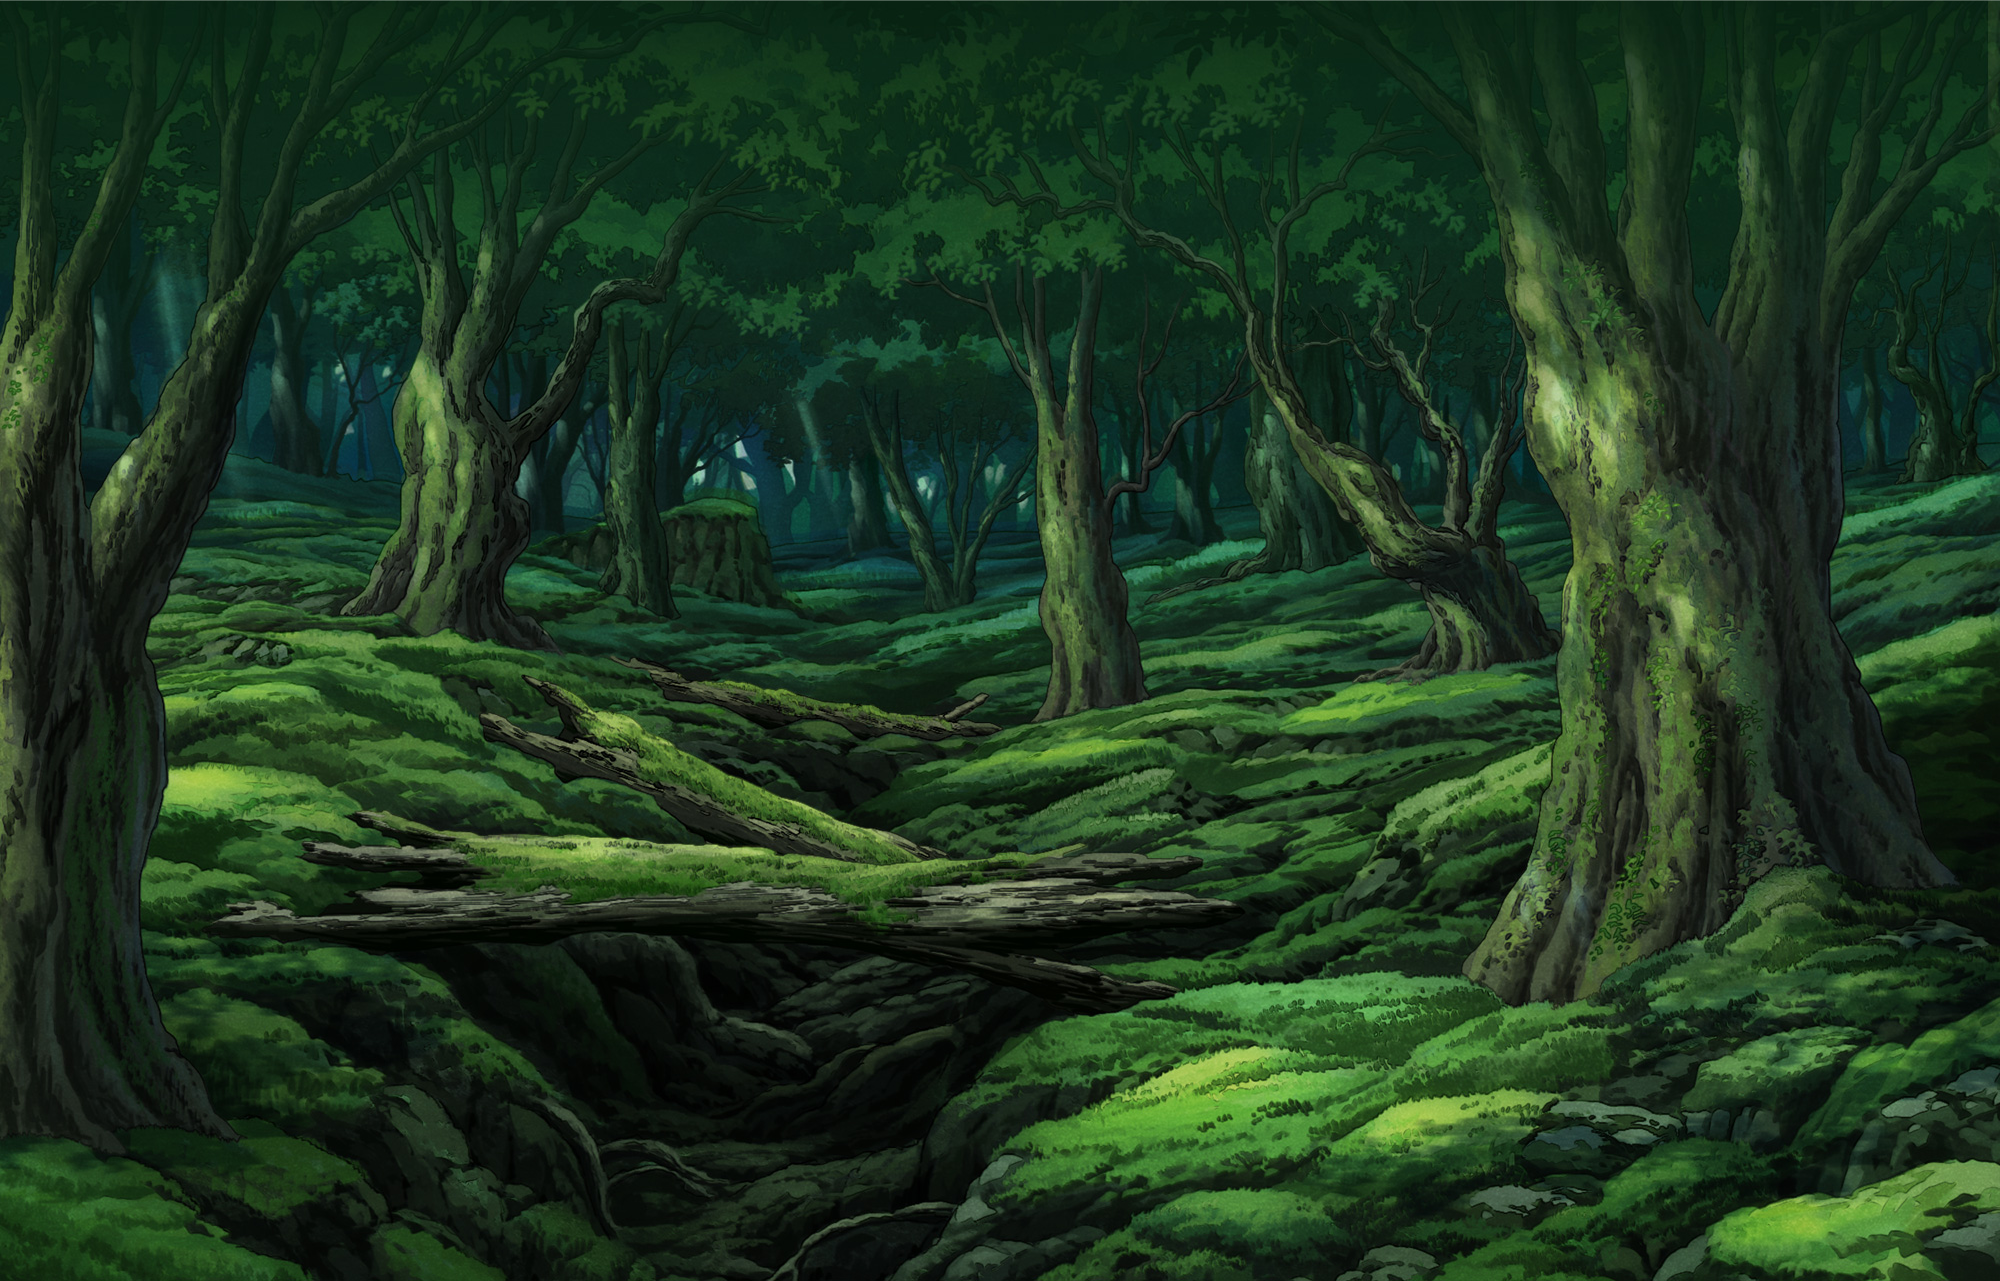 Green Forest Painting Google Search Forest Painting Forest Background Background